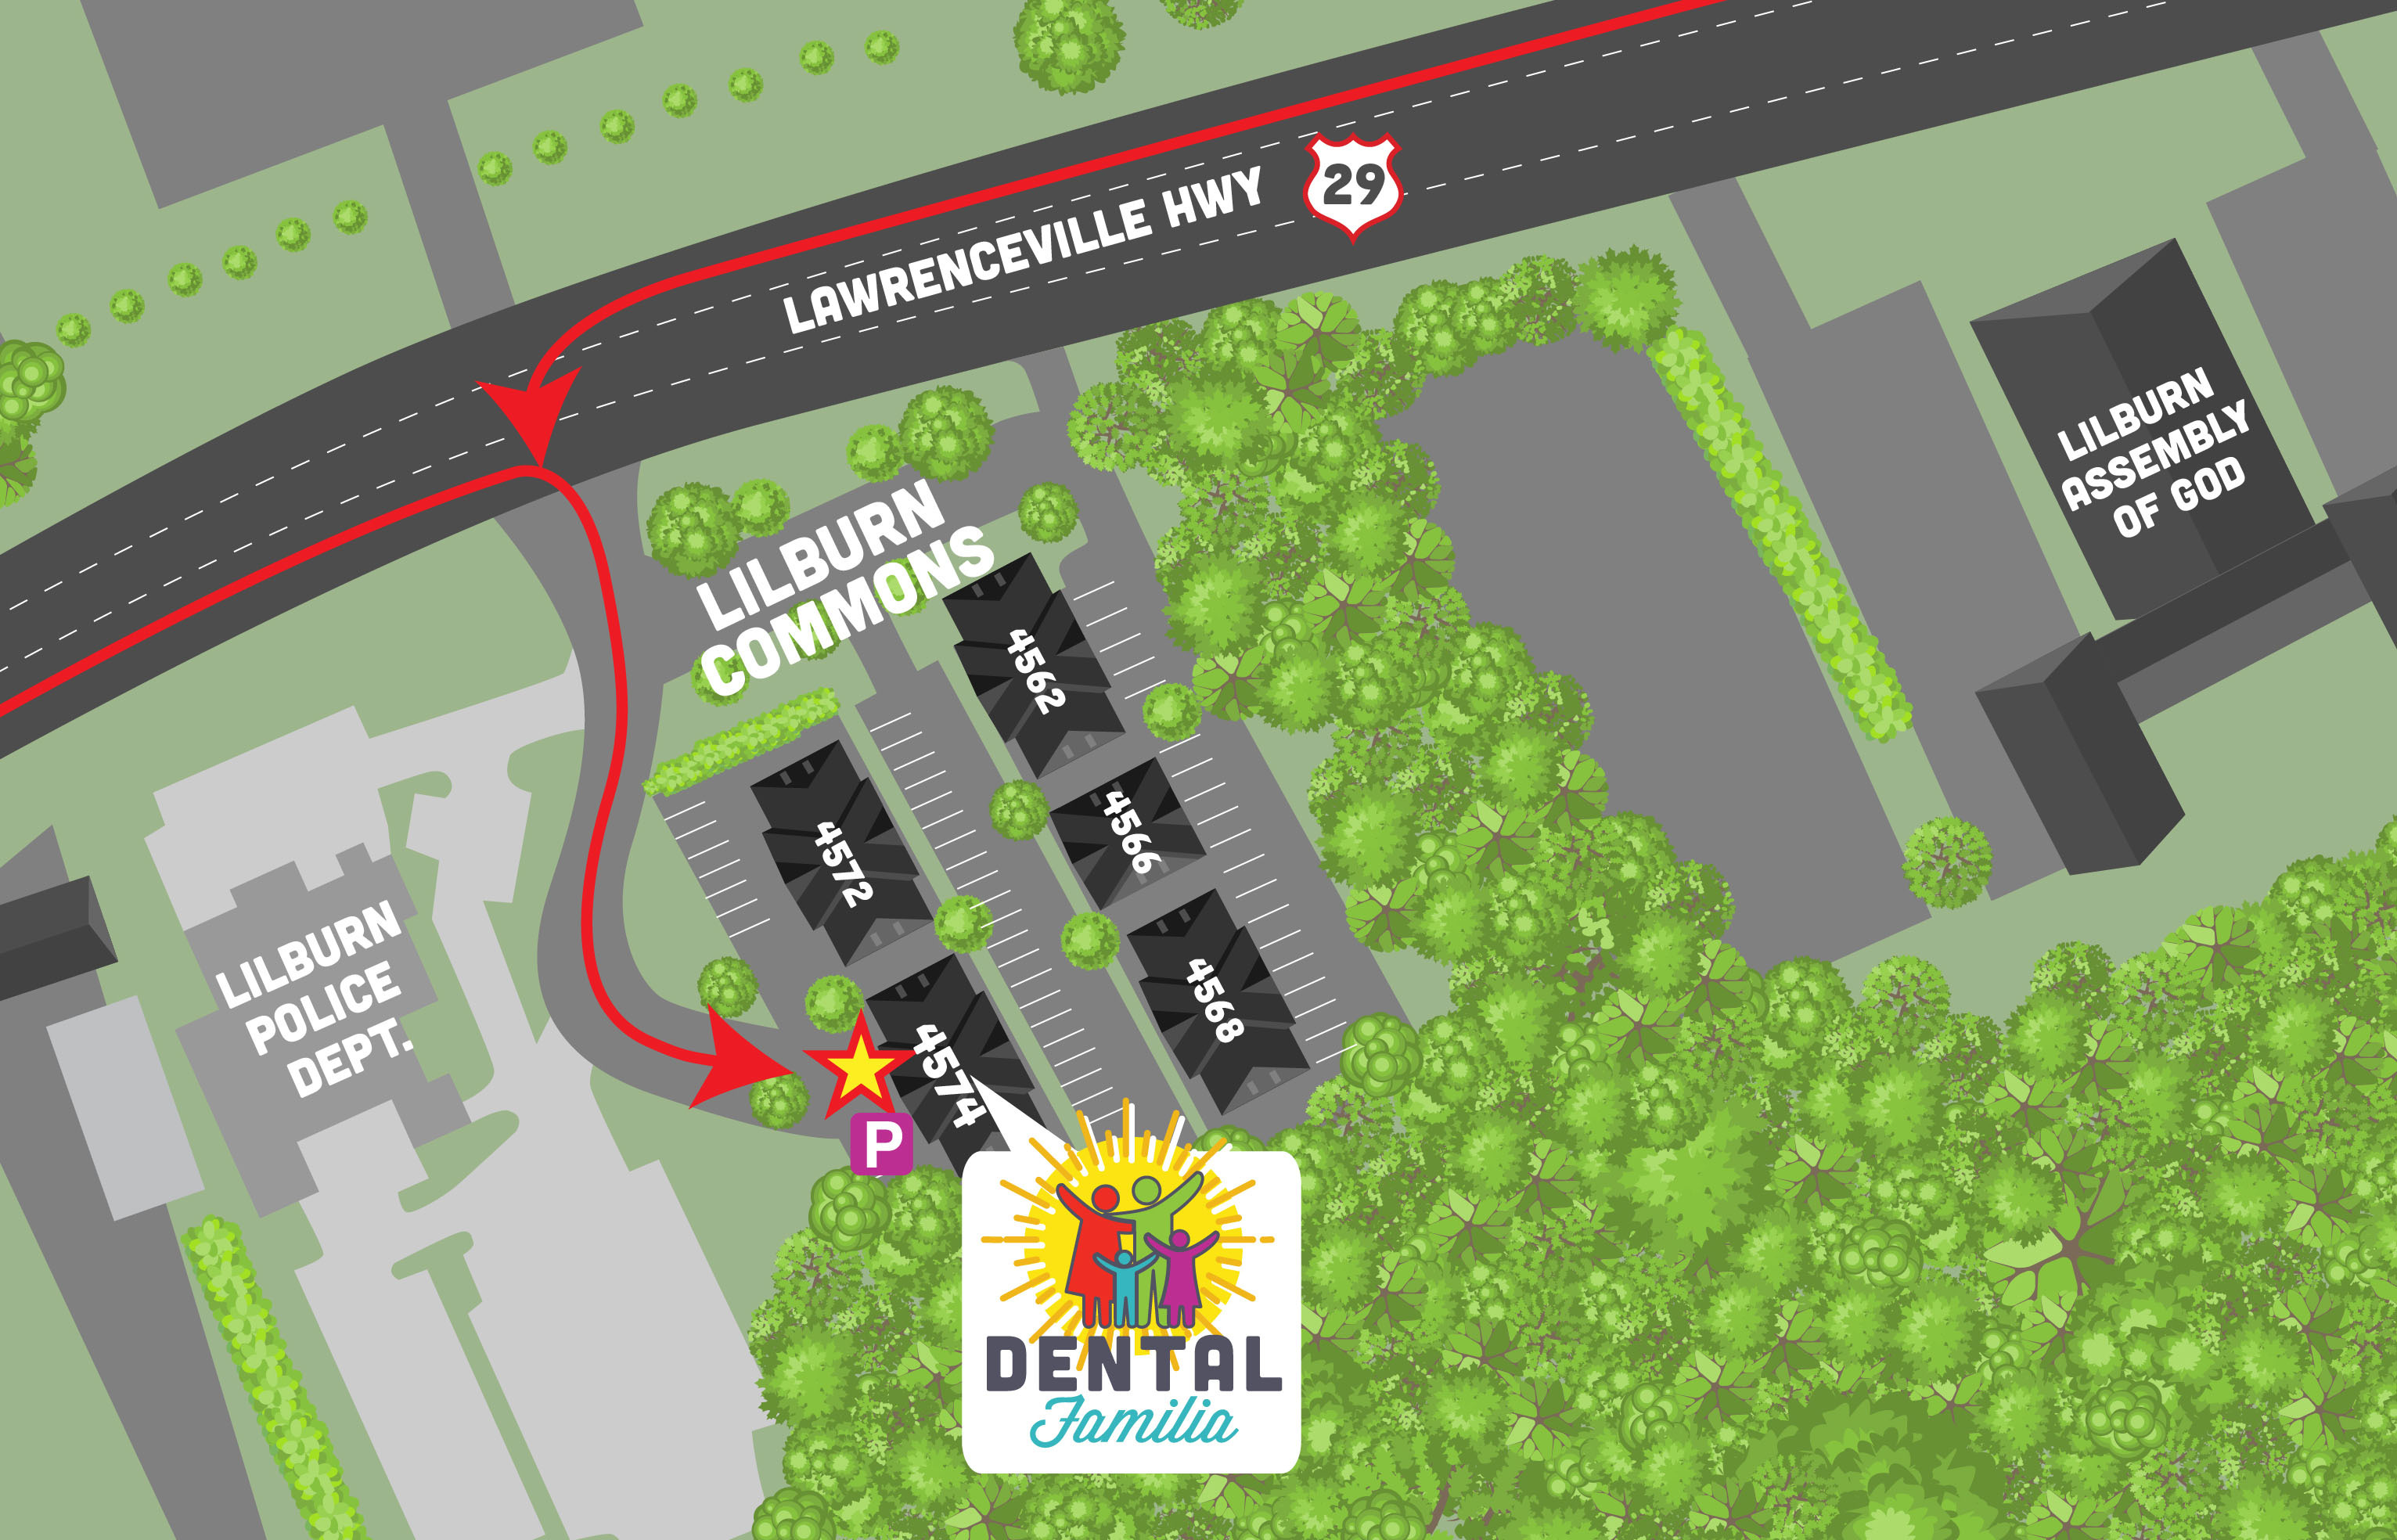 Dental Familia entrance map.